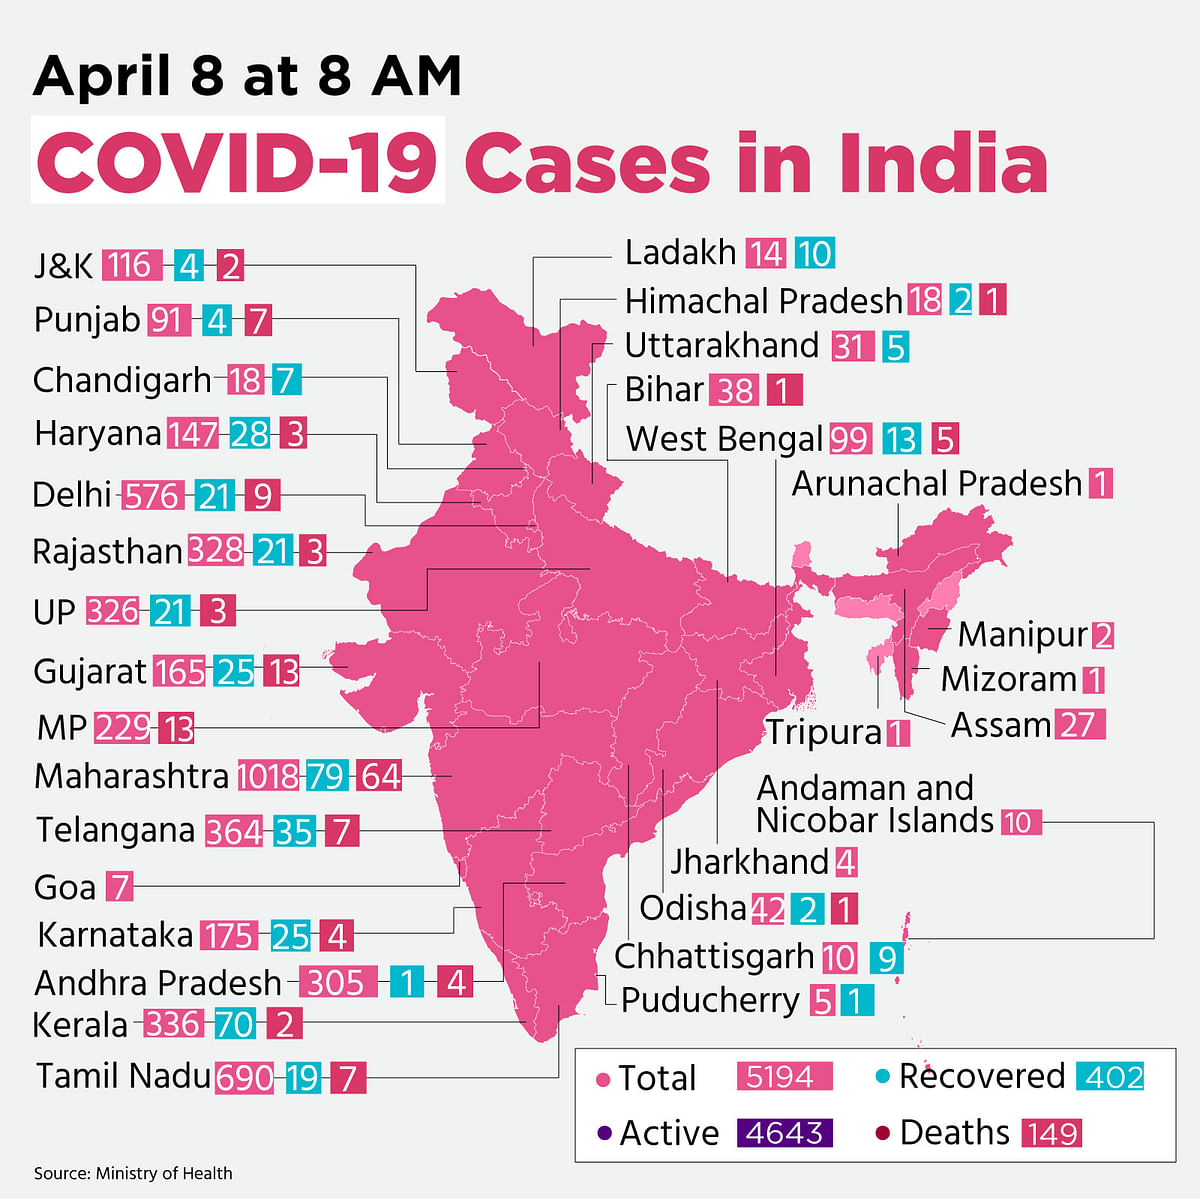 COVID-19 India Update: Cases Over 5,000; Death Toll Stands at 149